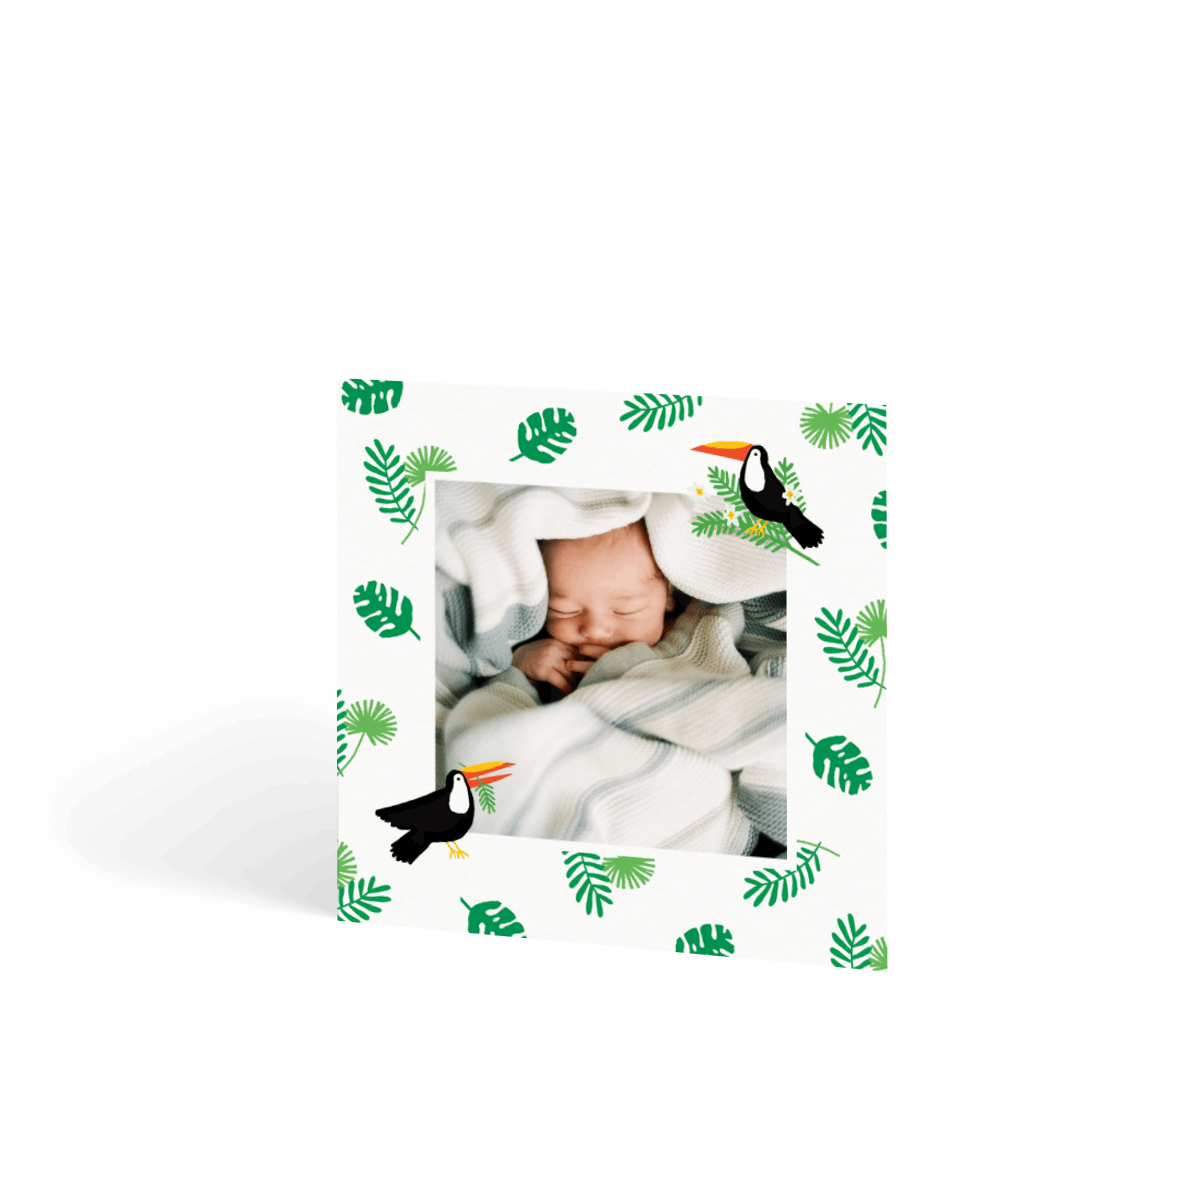 Https%3a%2f%2fwww.papier.com%2fproduct image%2f76009%2f16%2ftoucan jungle 17822 front 1557951680.png?ixlib=rb 1.1